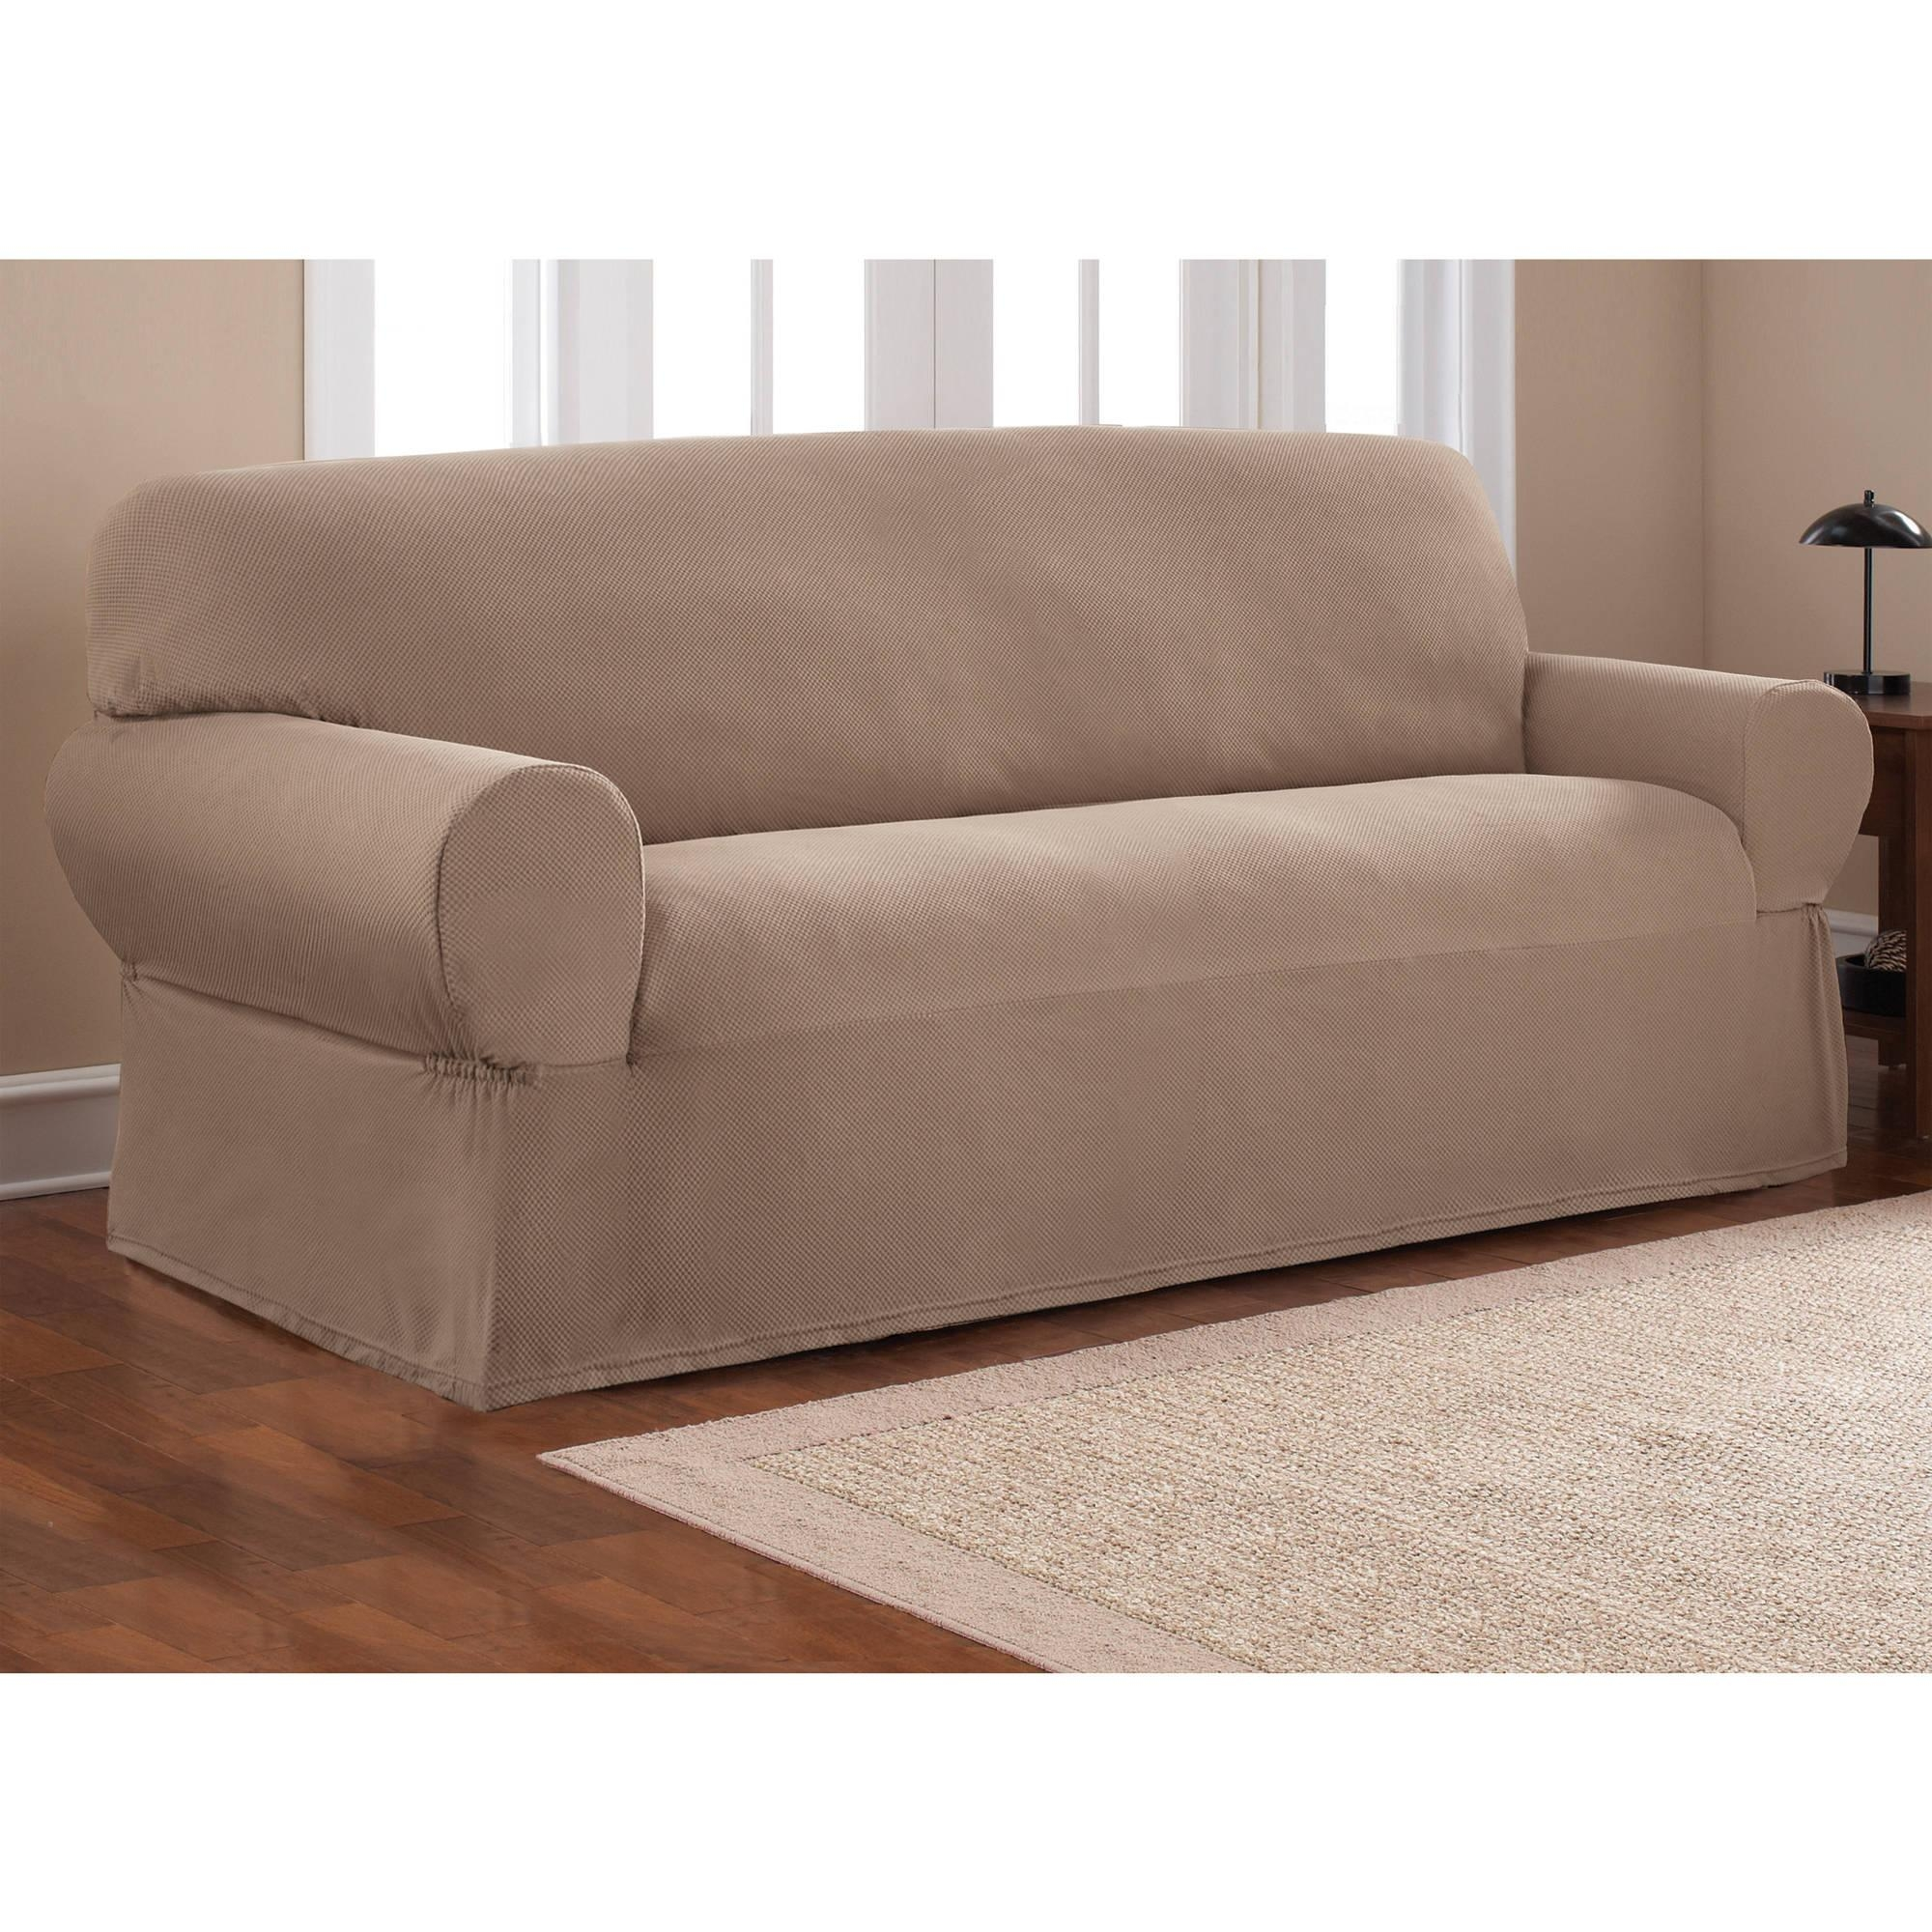 Furniture: Couch Covers At Walmart To Make Your Furniture Stylish Regarding Covers For Sofas (View 6 of 20)